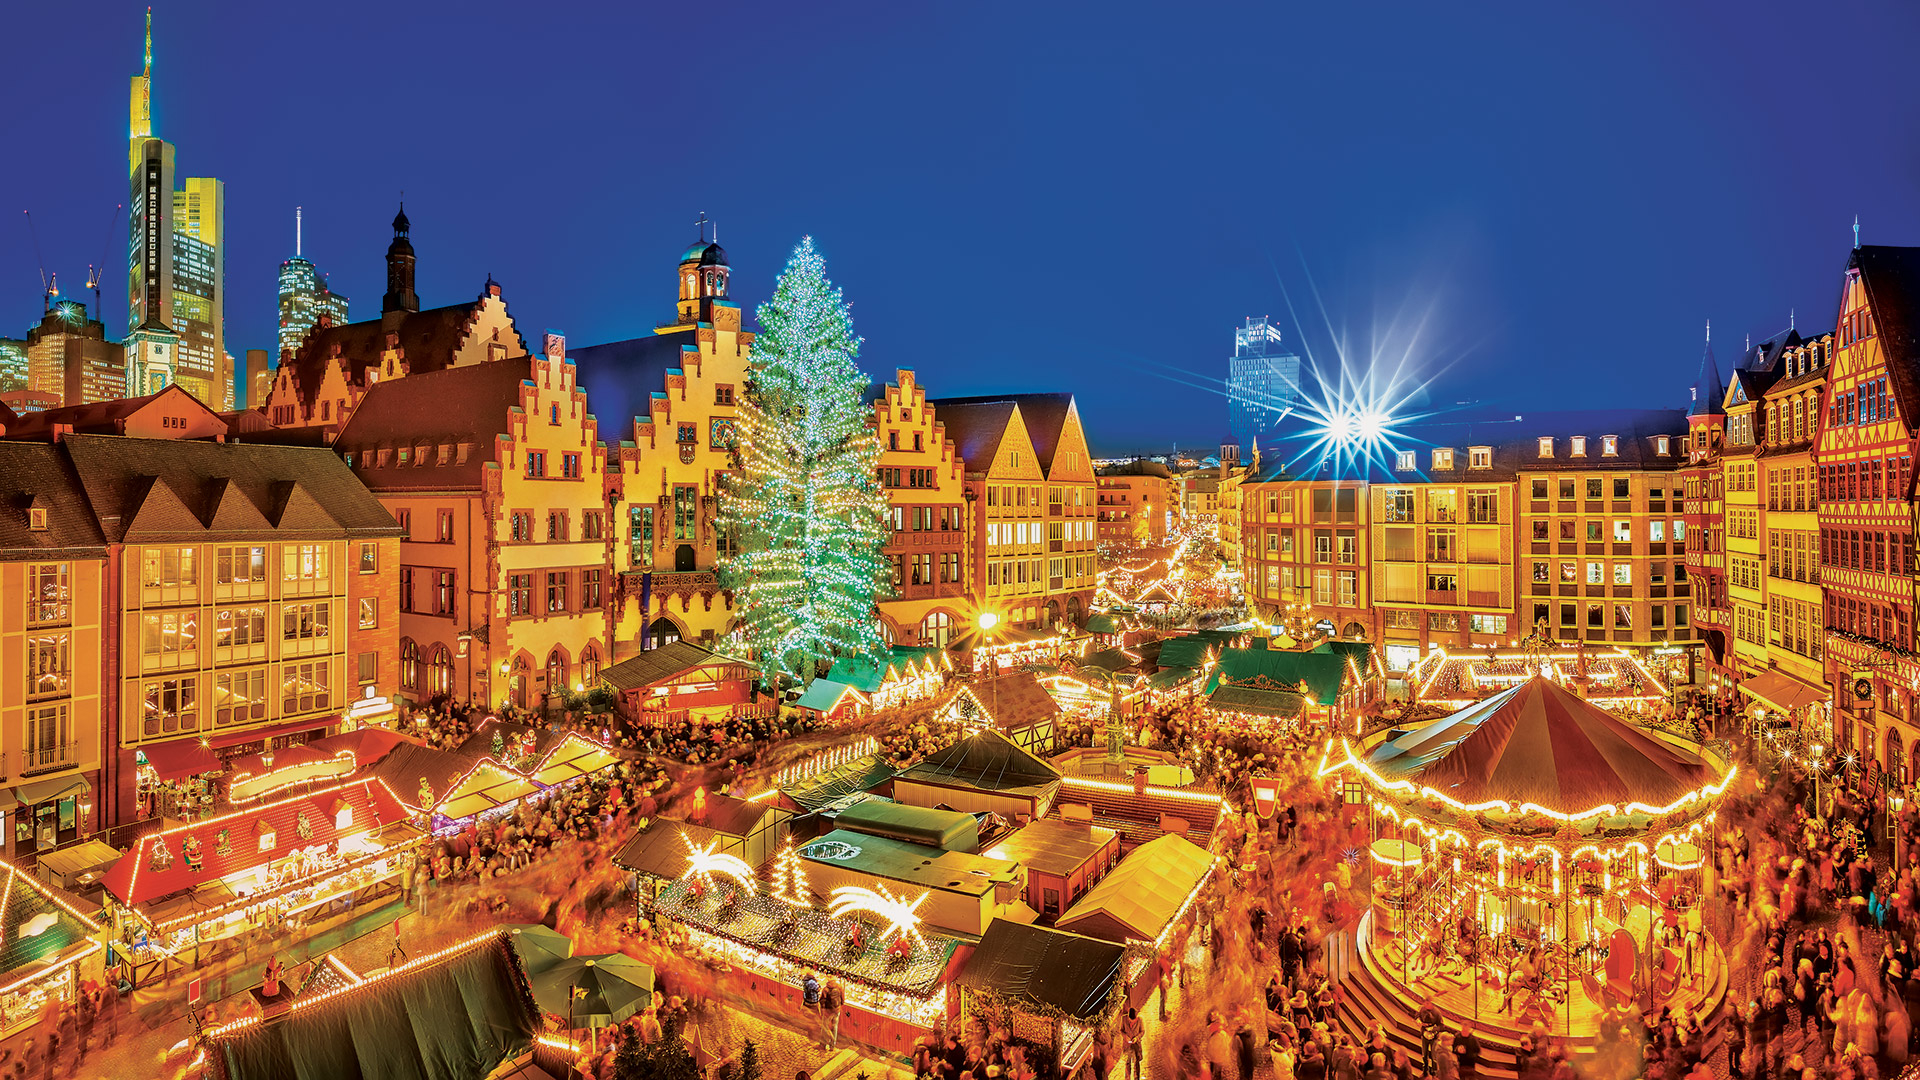 Christmas Ny 2019.Classic Christmas Markets Nuremberg To Frankfurt 2019 From Nuremberg To Frankfurt Am Main